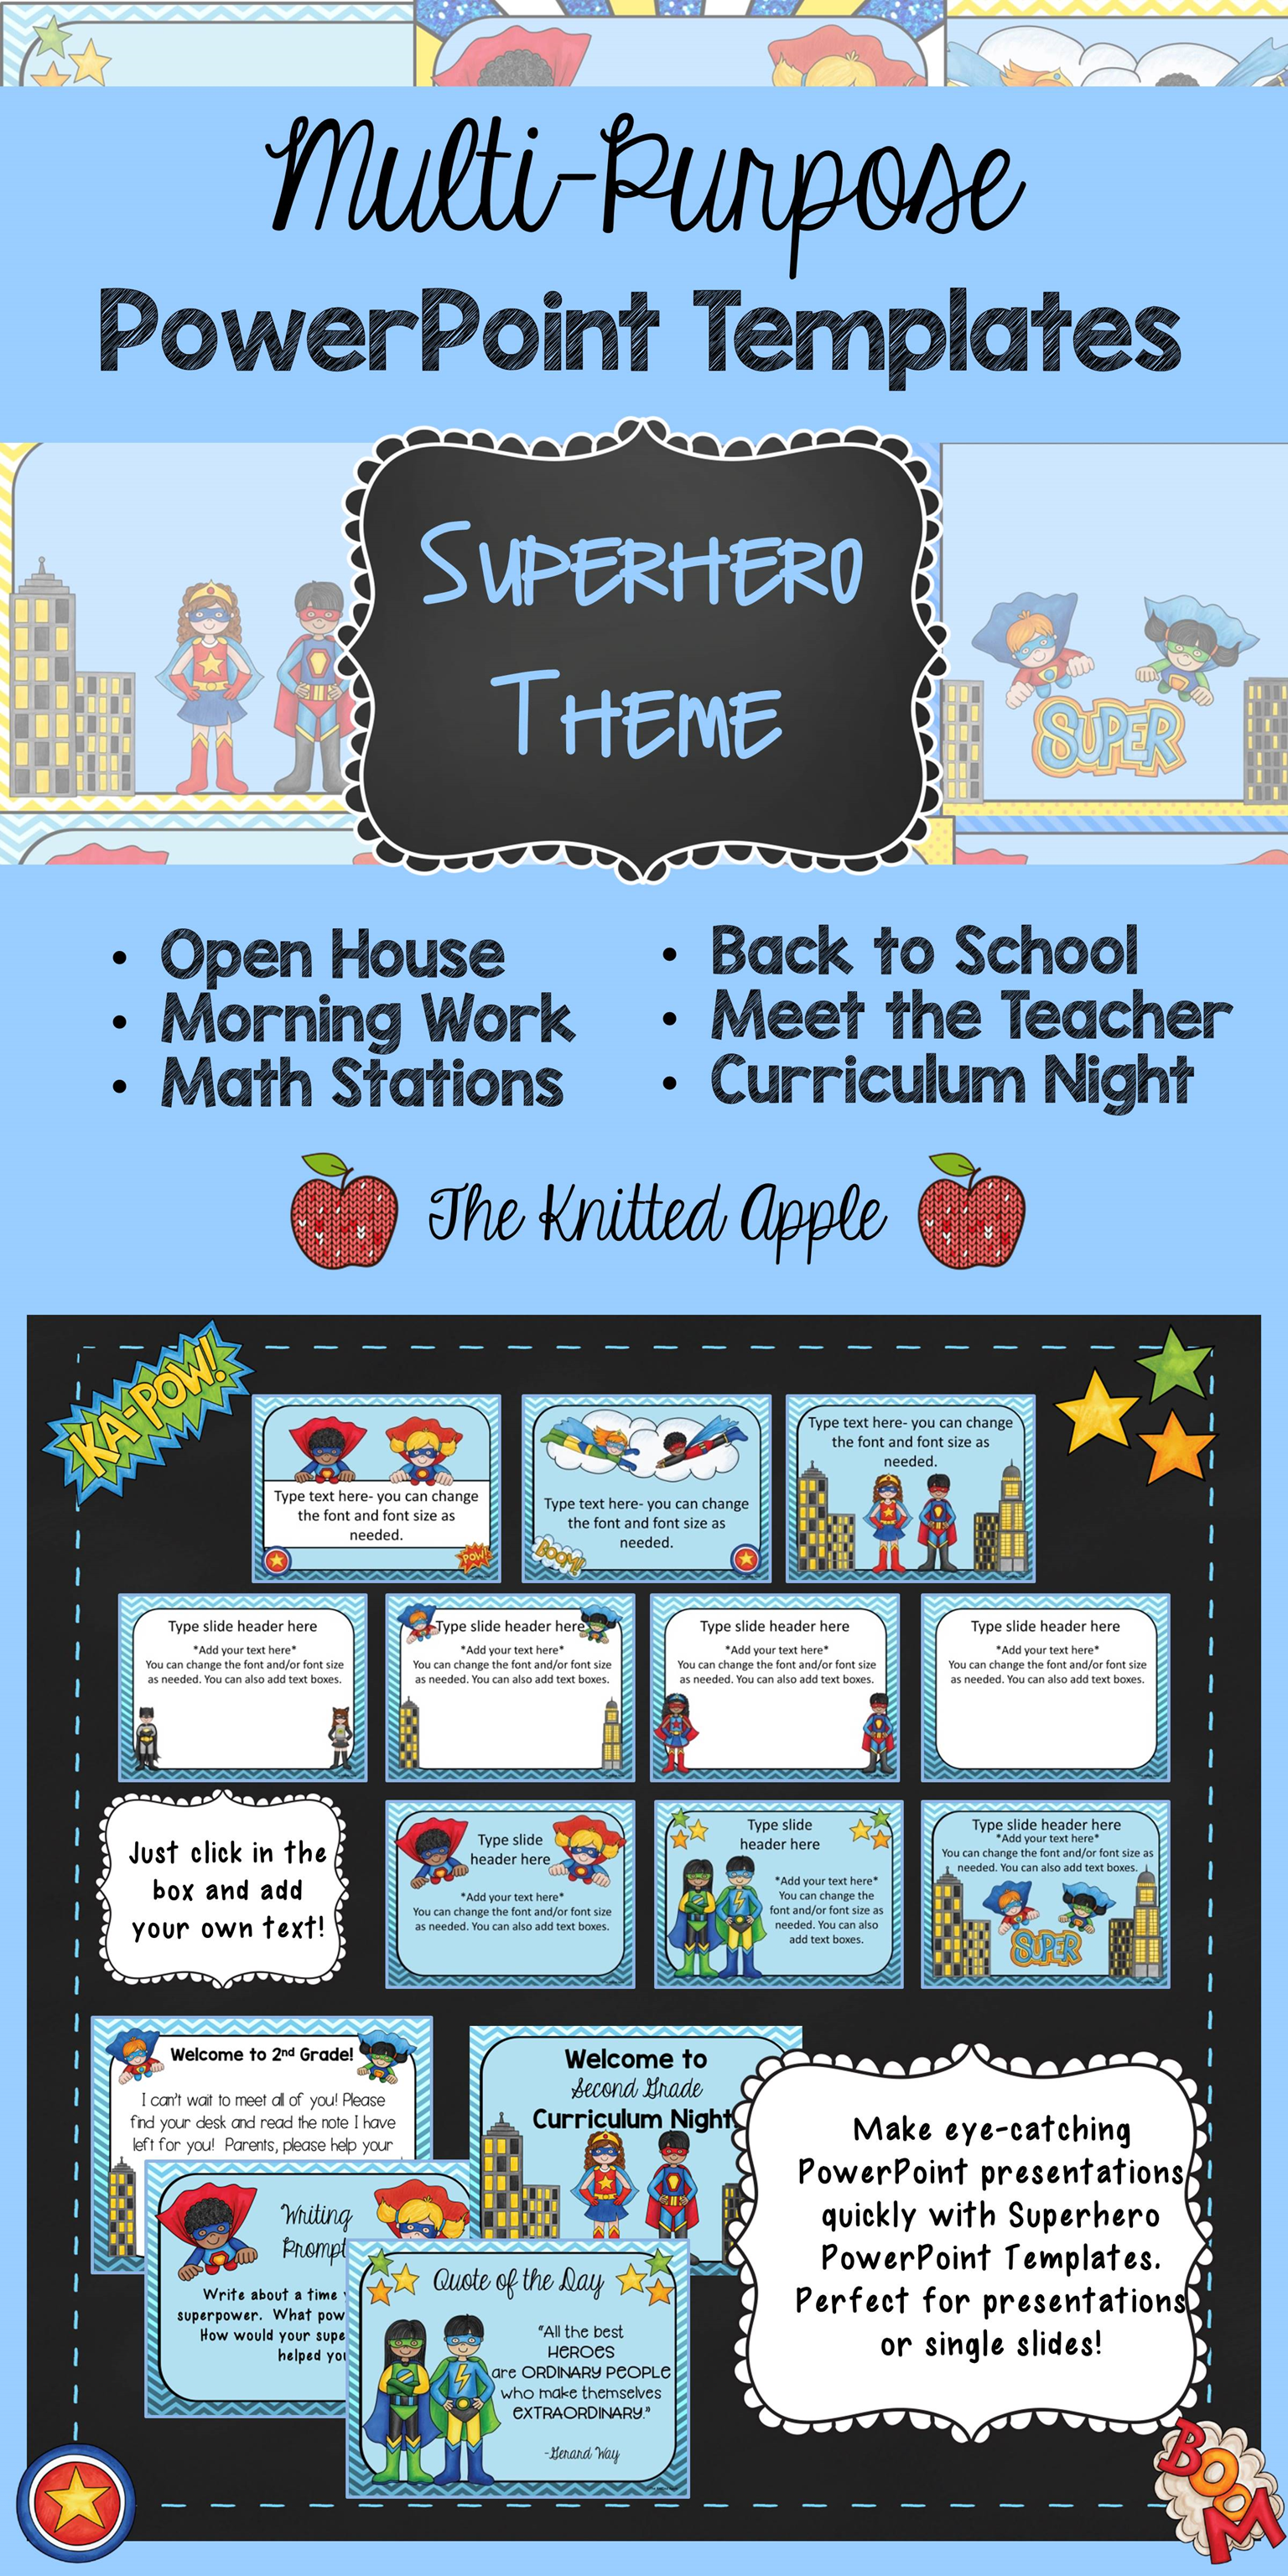 Superhero Theme Powerpoint Templates  Curriculum Night Superhero